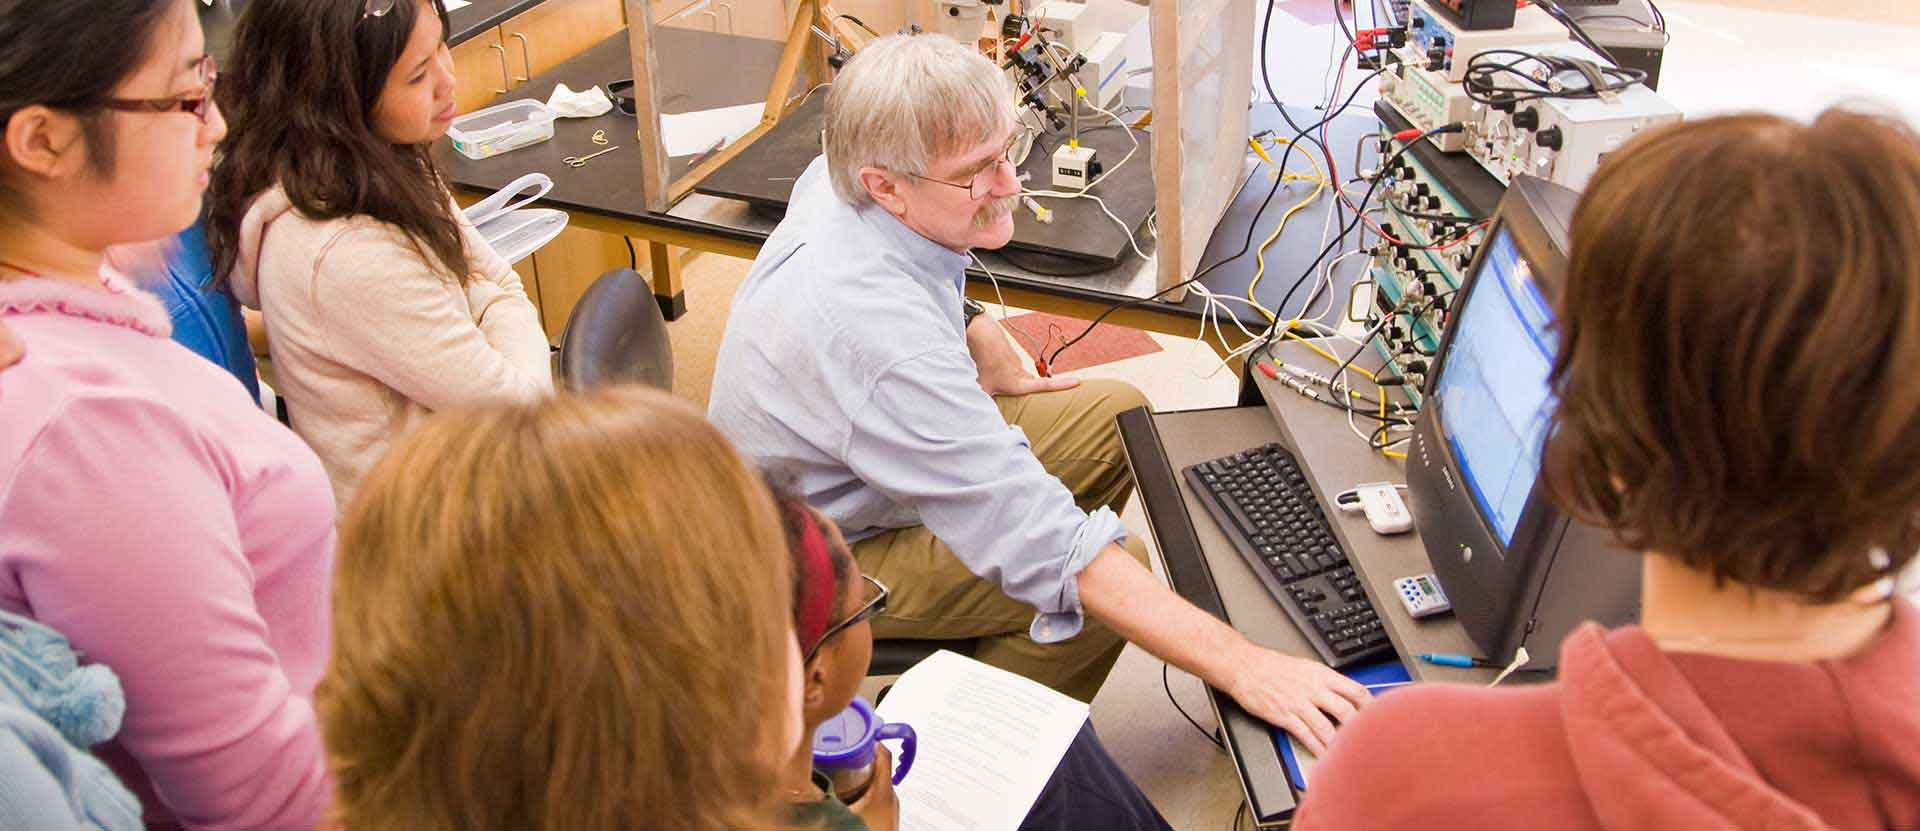 Neuroscience professor leads classroom through experiment in the lab